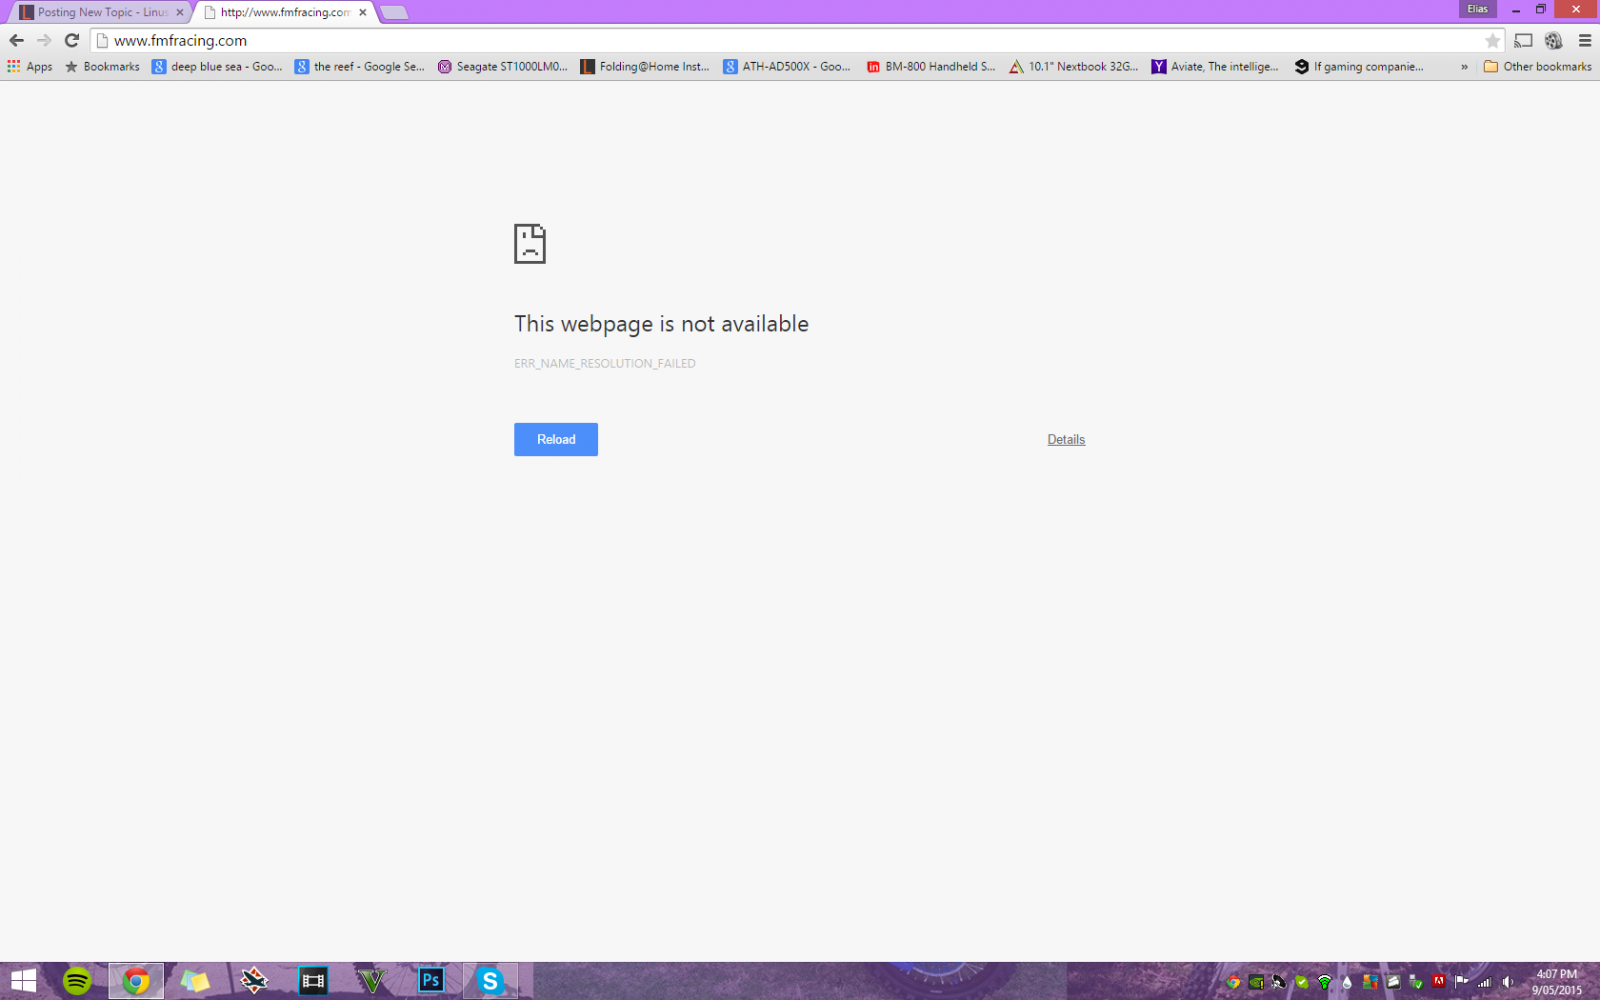 Why can't i go on this certain website? (Google Chrome